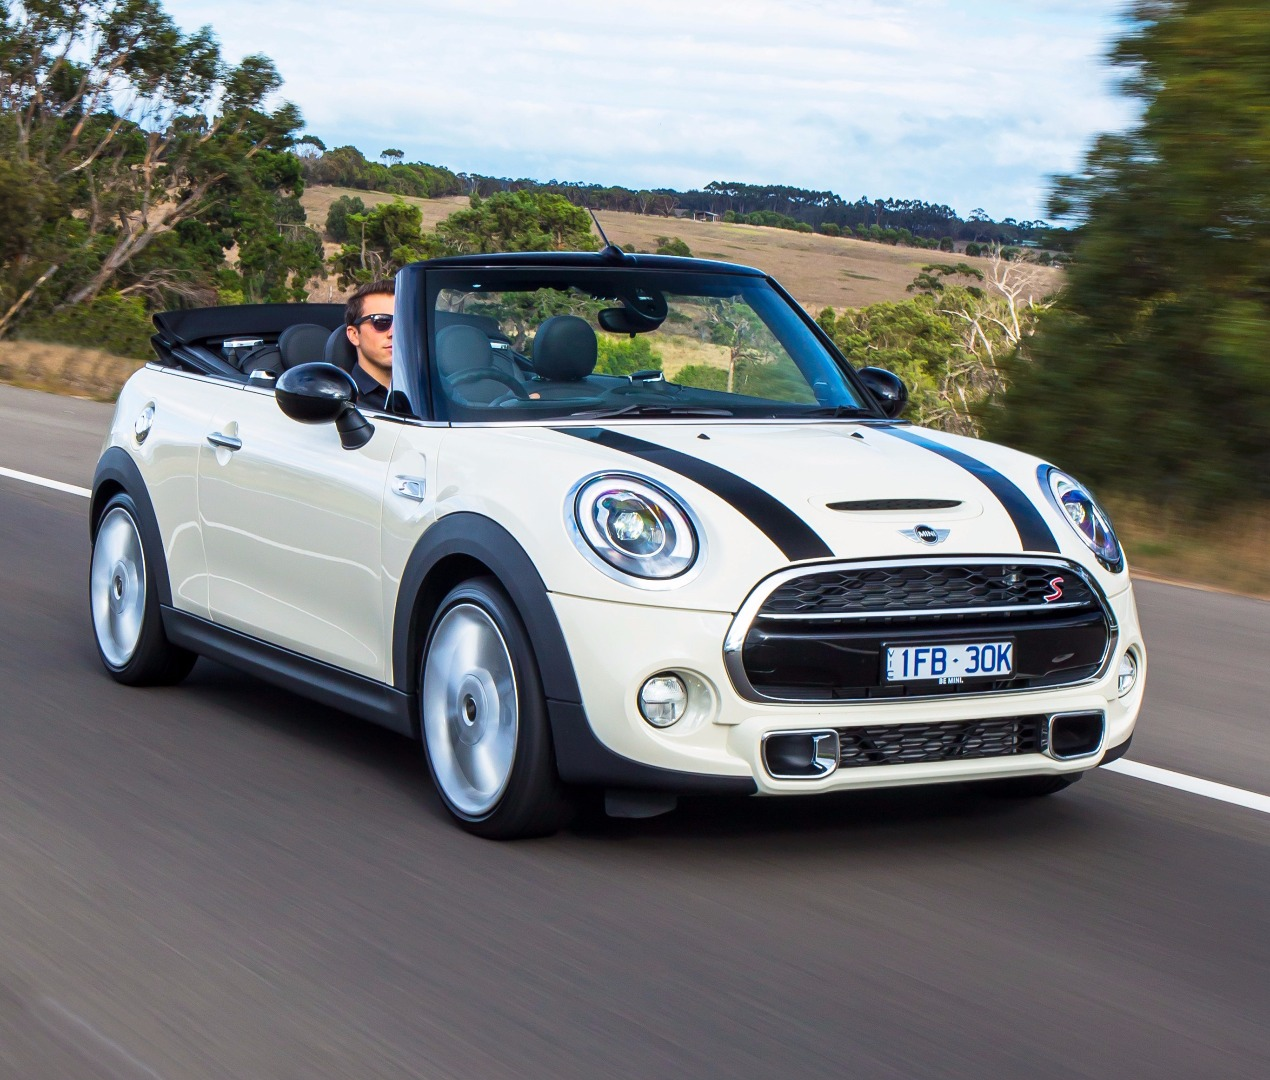 review 2016 mini cooper s convertible full review. Black Bedroom Furniture Sets. Home Design Ideas